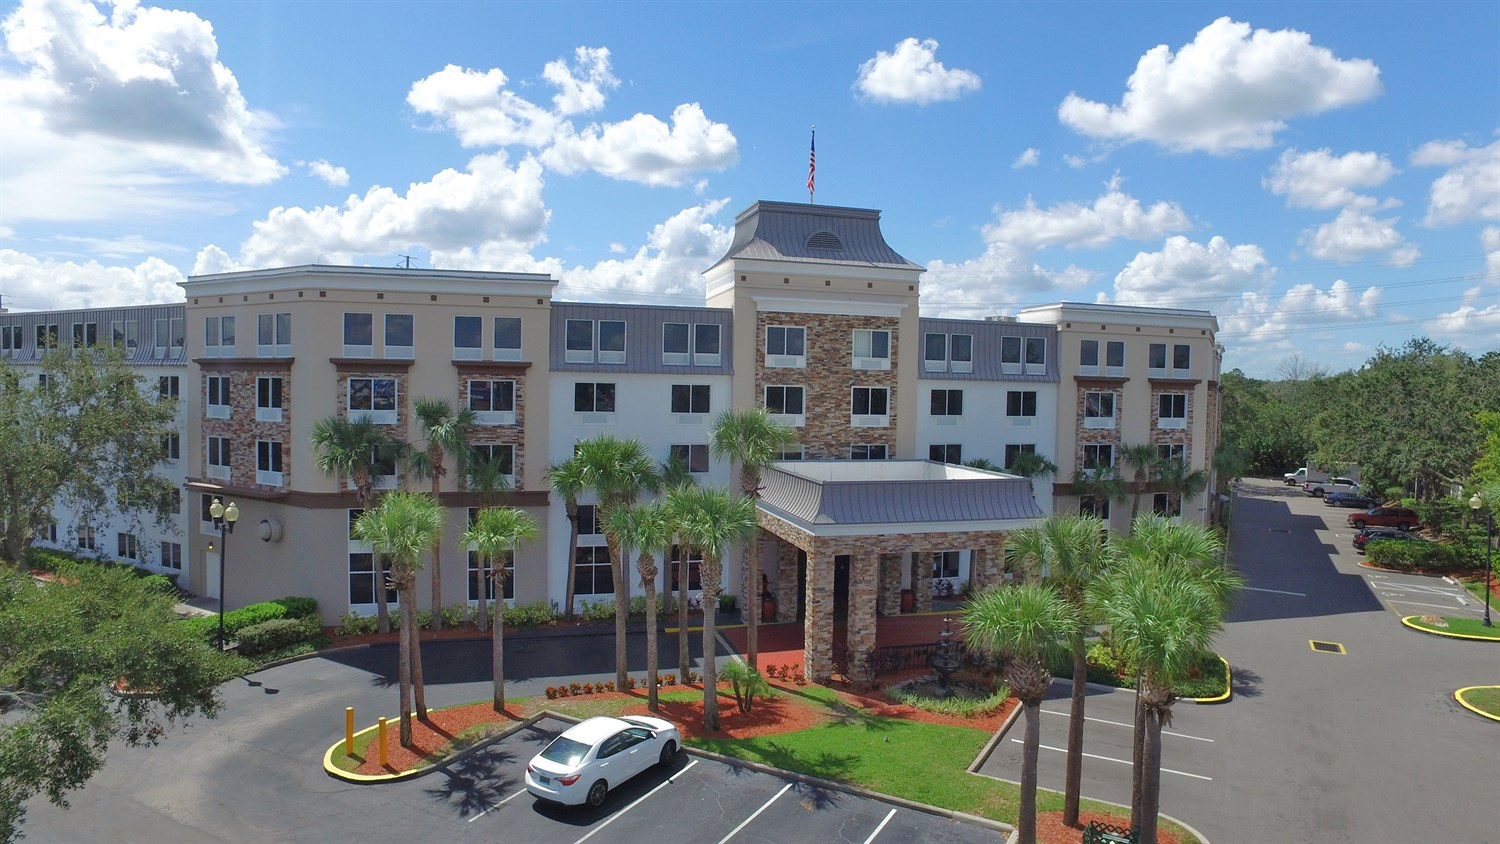 Image of Royale Parc Suites Hotel in Orlando Exterior